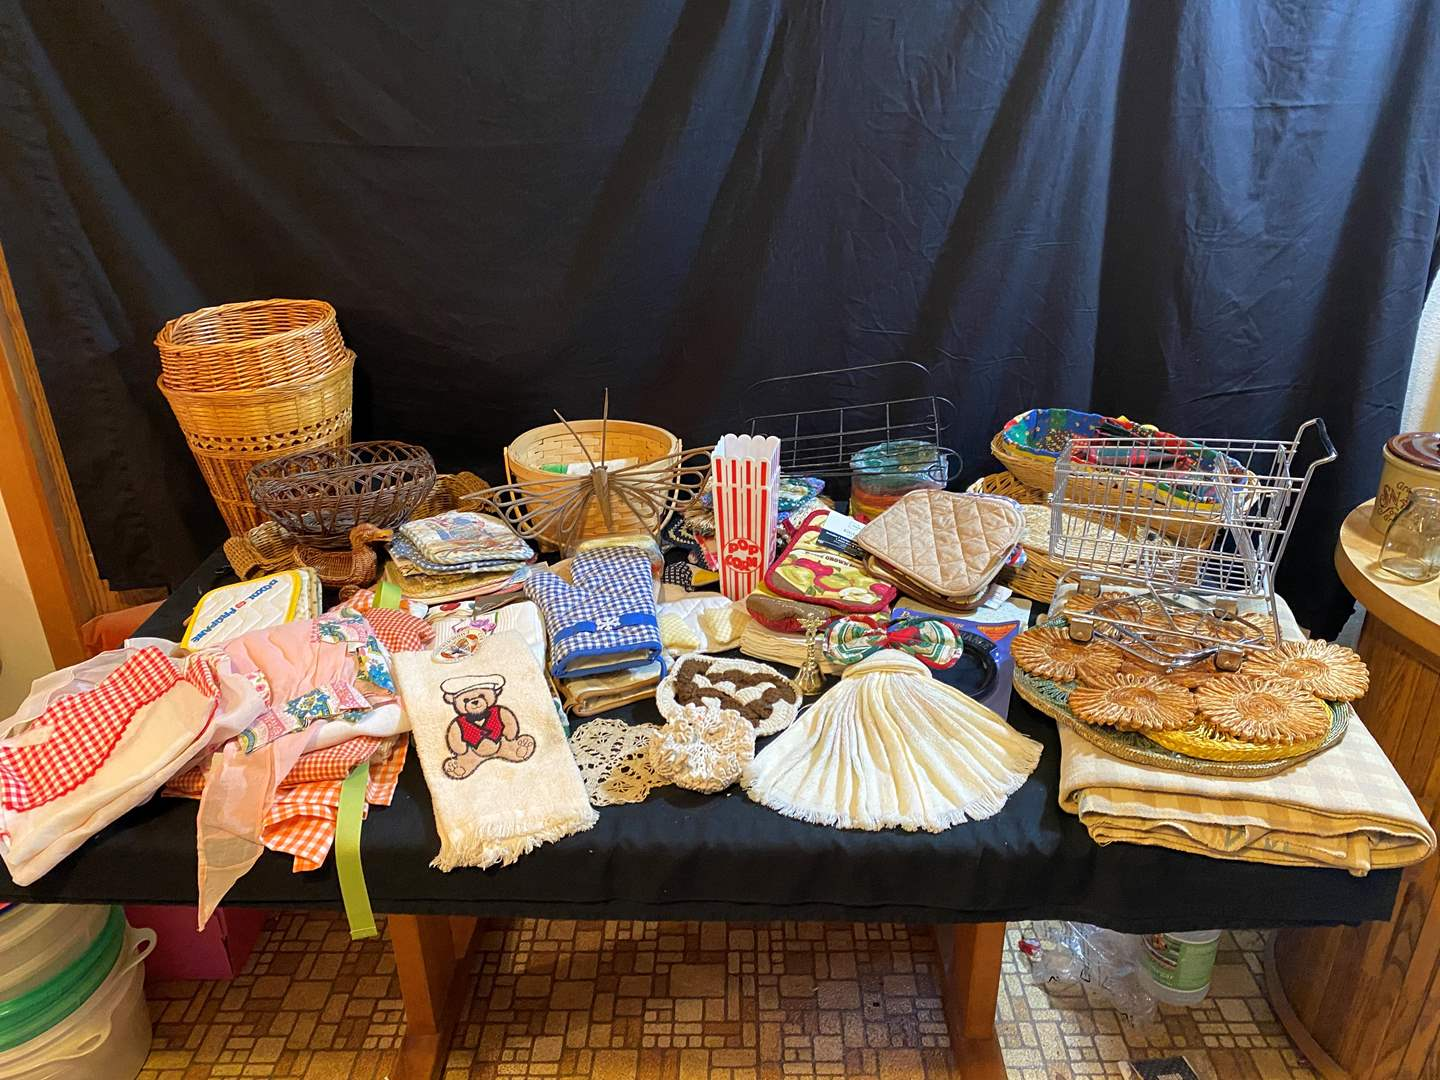 Lot # 170 - Selection of Hand Towels, Baskets & Misc. Decor (main image)